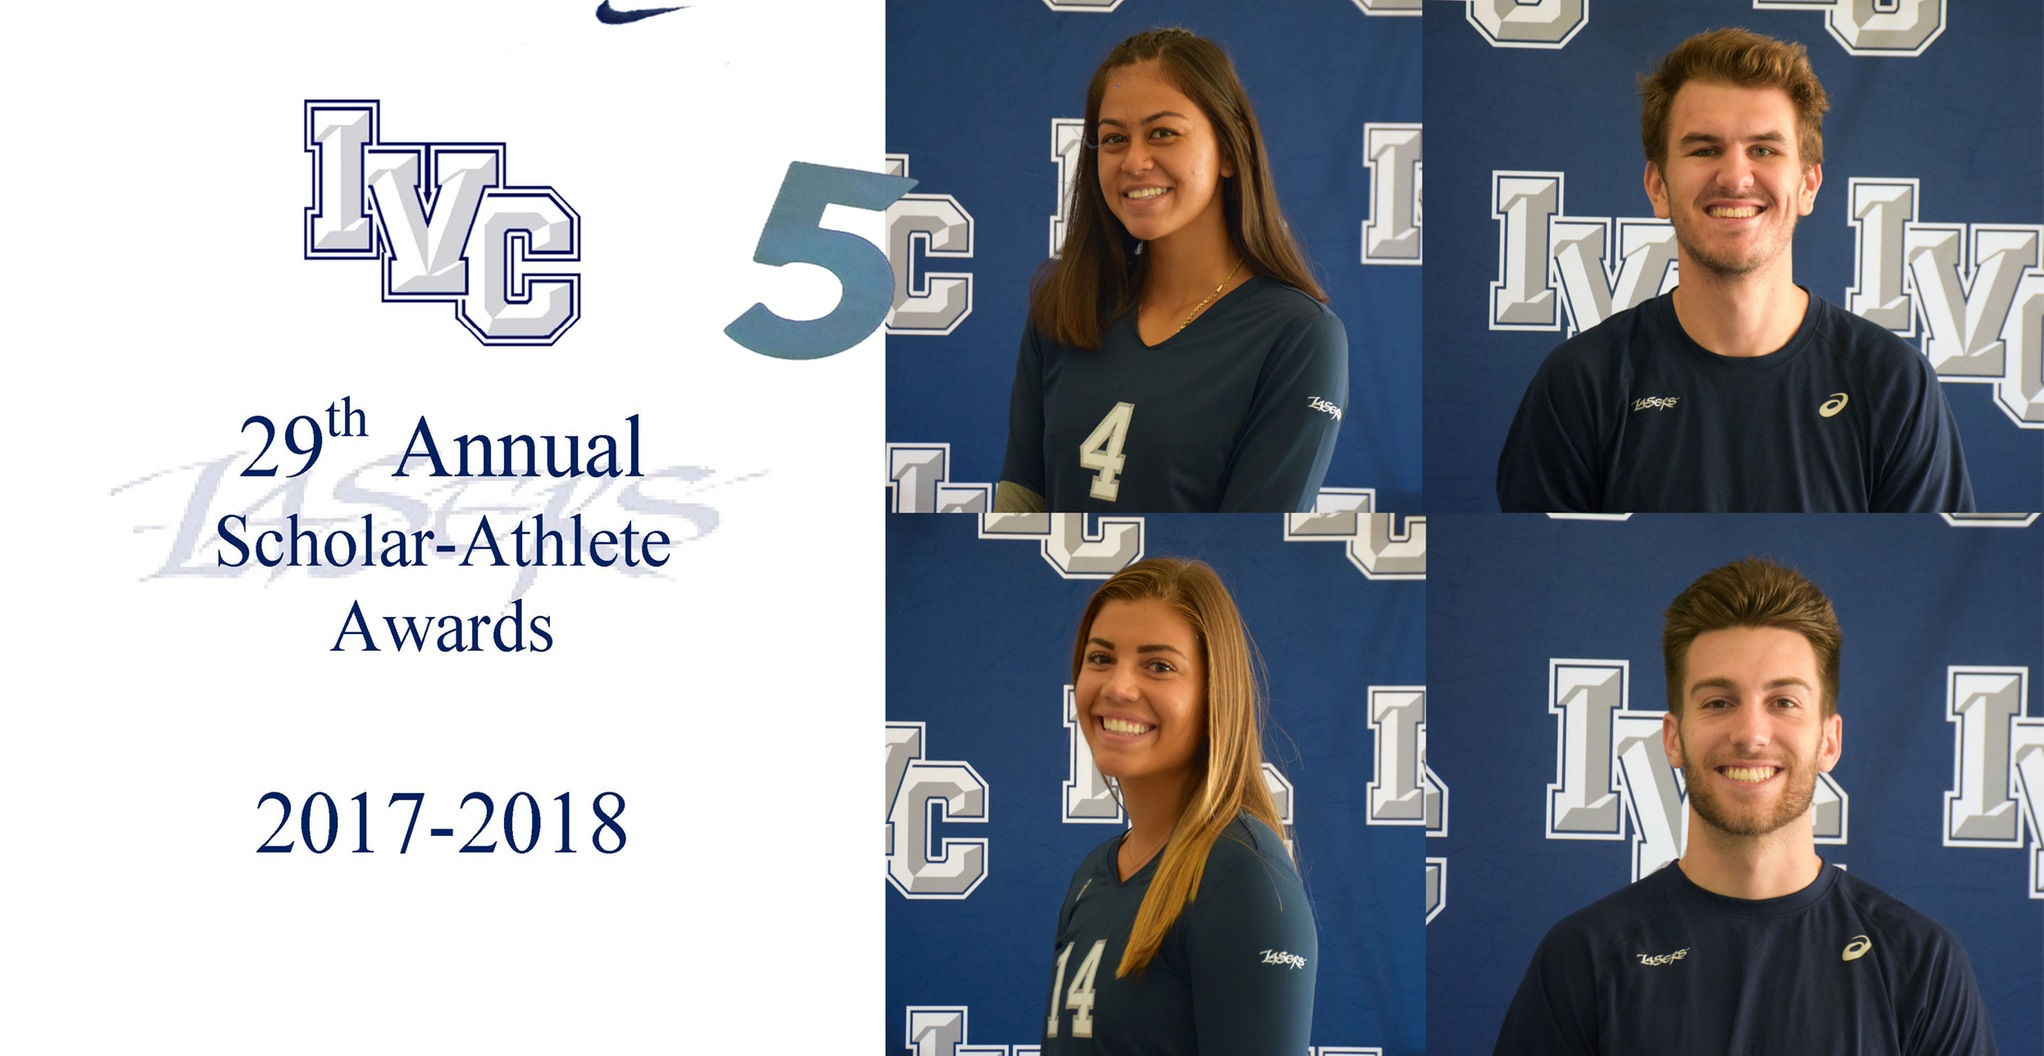 No. 5 Story of the Year - Irvine Valley hands out athlete awards